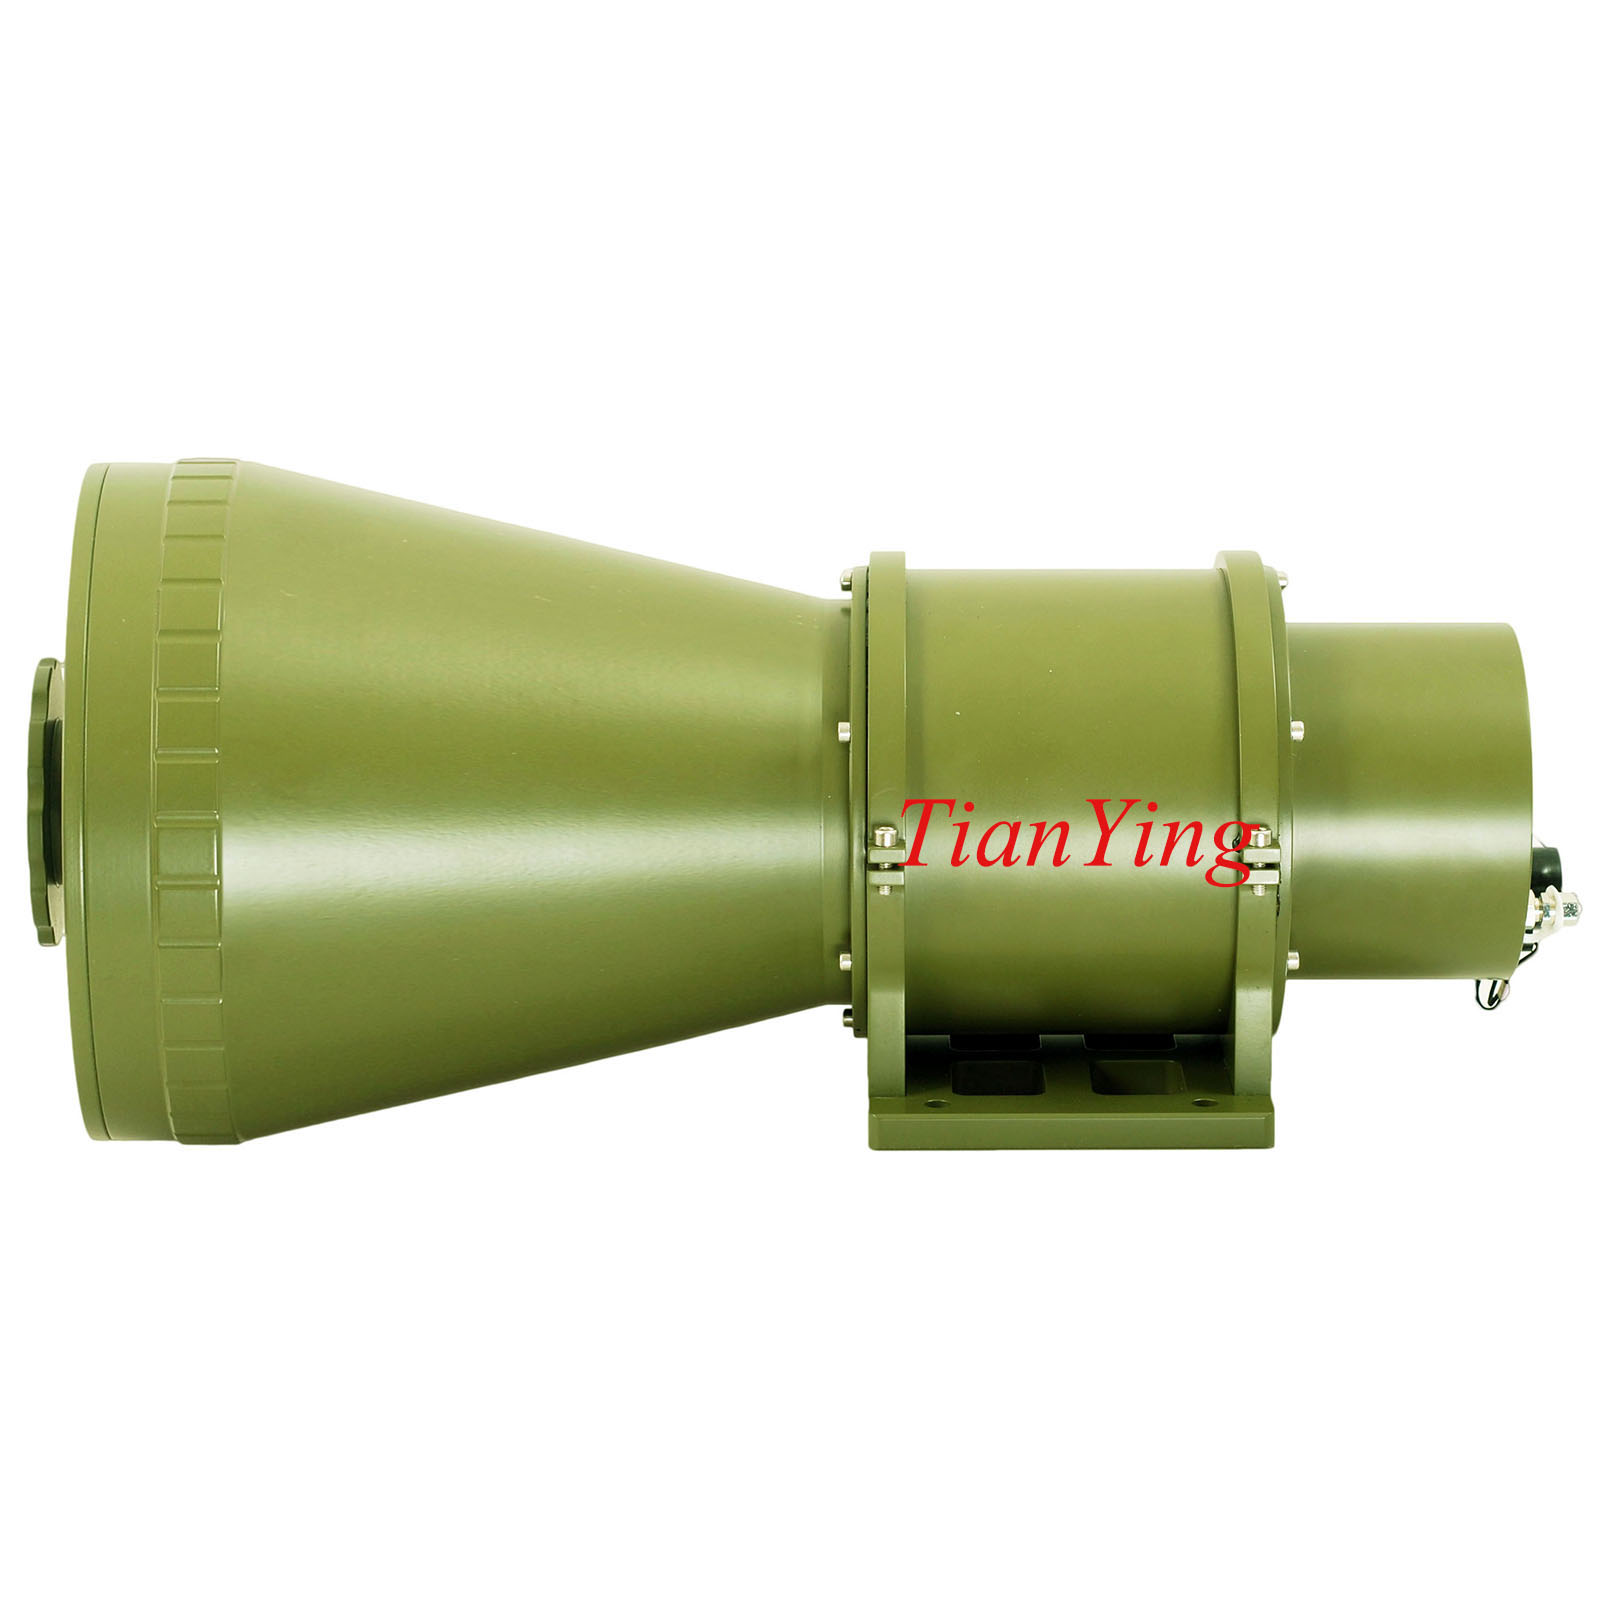 640x512 48mk 50/200mm Focus 2km/5km Surveillance Infrared Thermal Camera